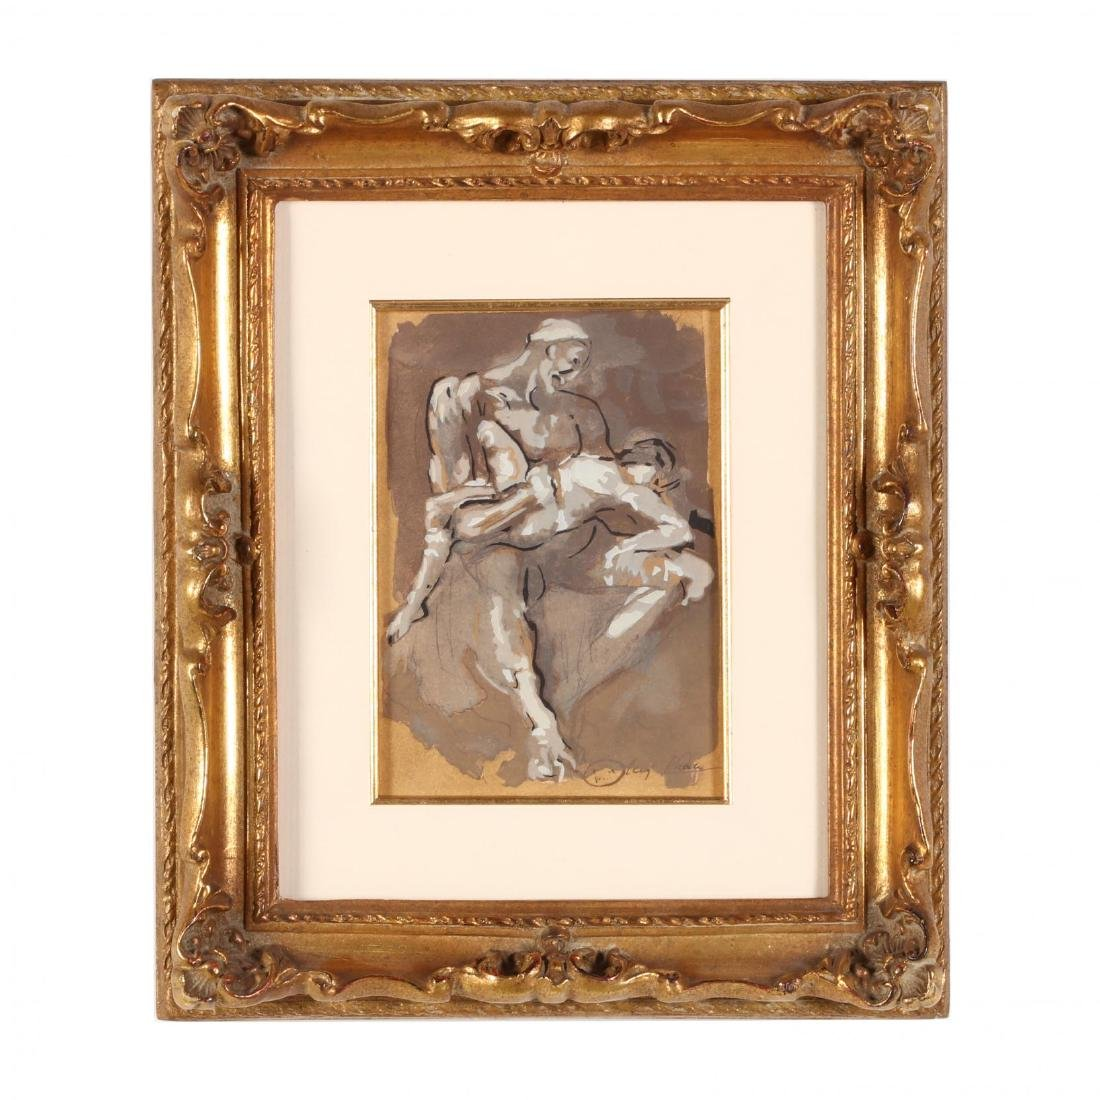 after Auguste Rodin (French, 1840-1917),  Ugolin Dans